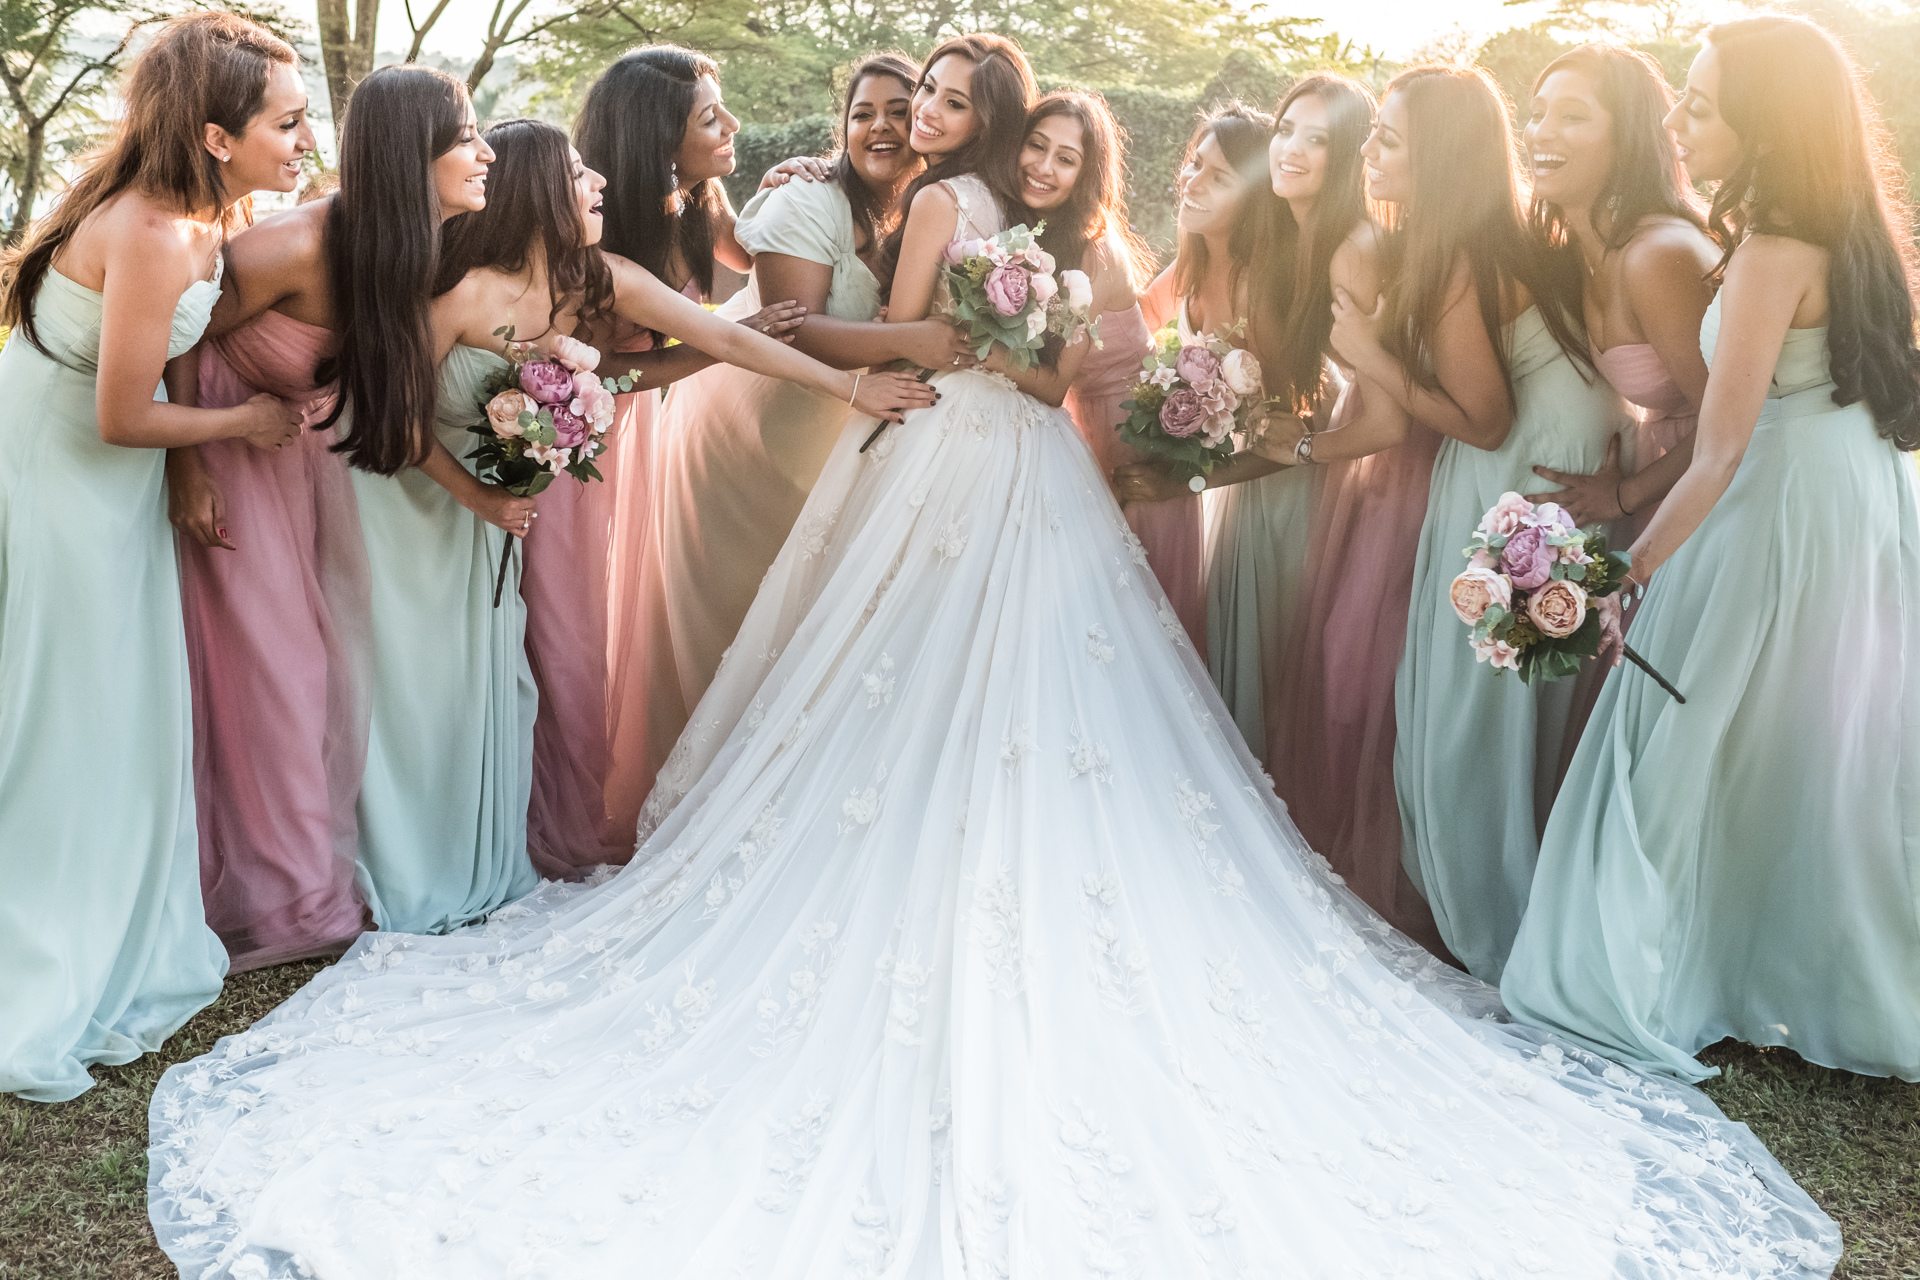 Bride wearing long train embraced by bridesmaids - photo by Sephi Bergerson